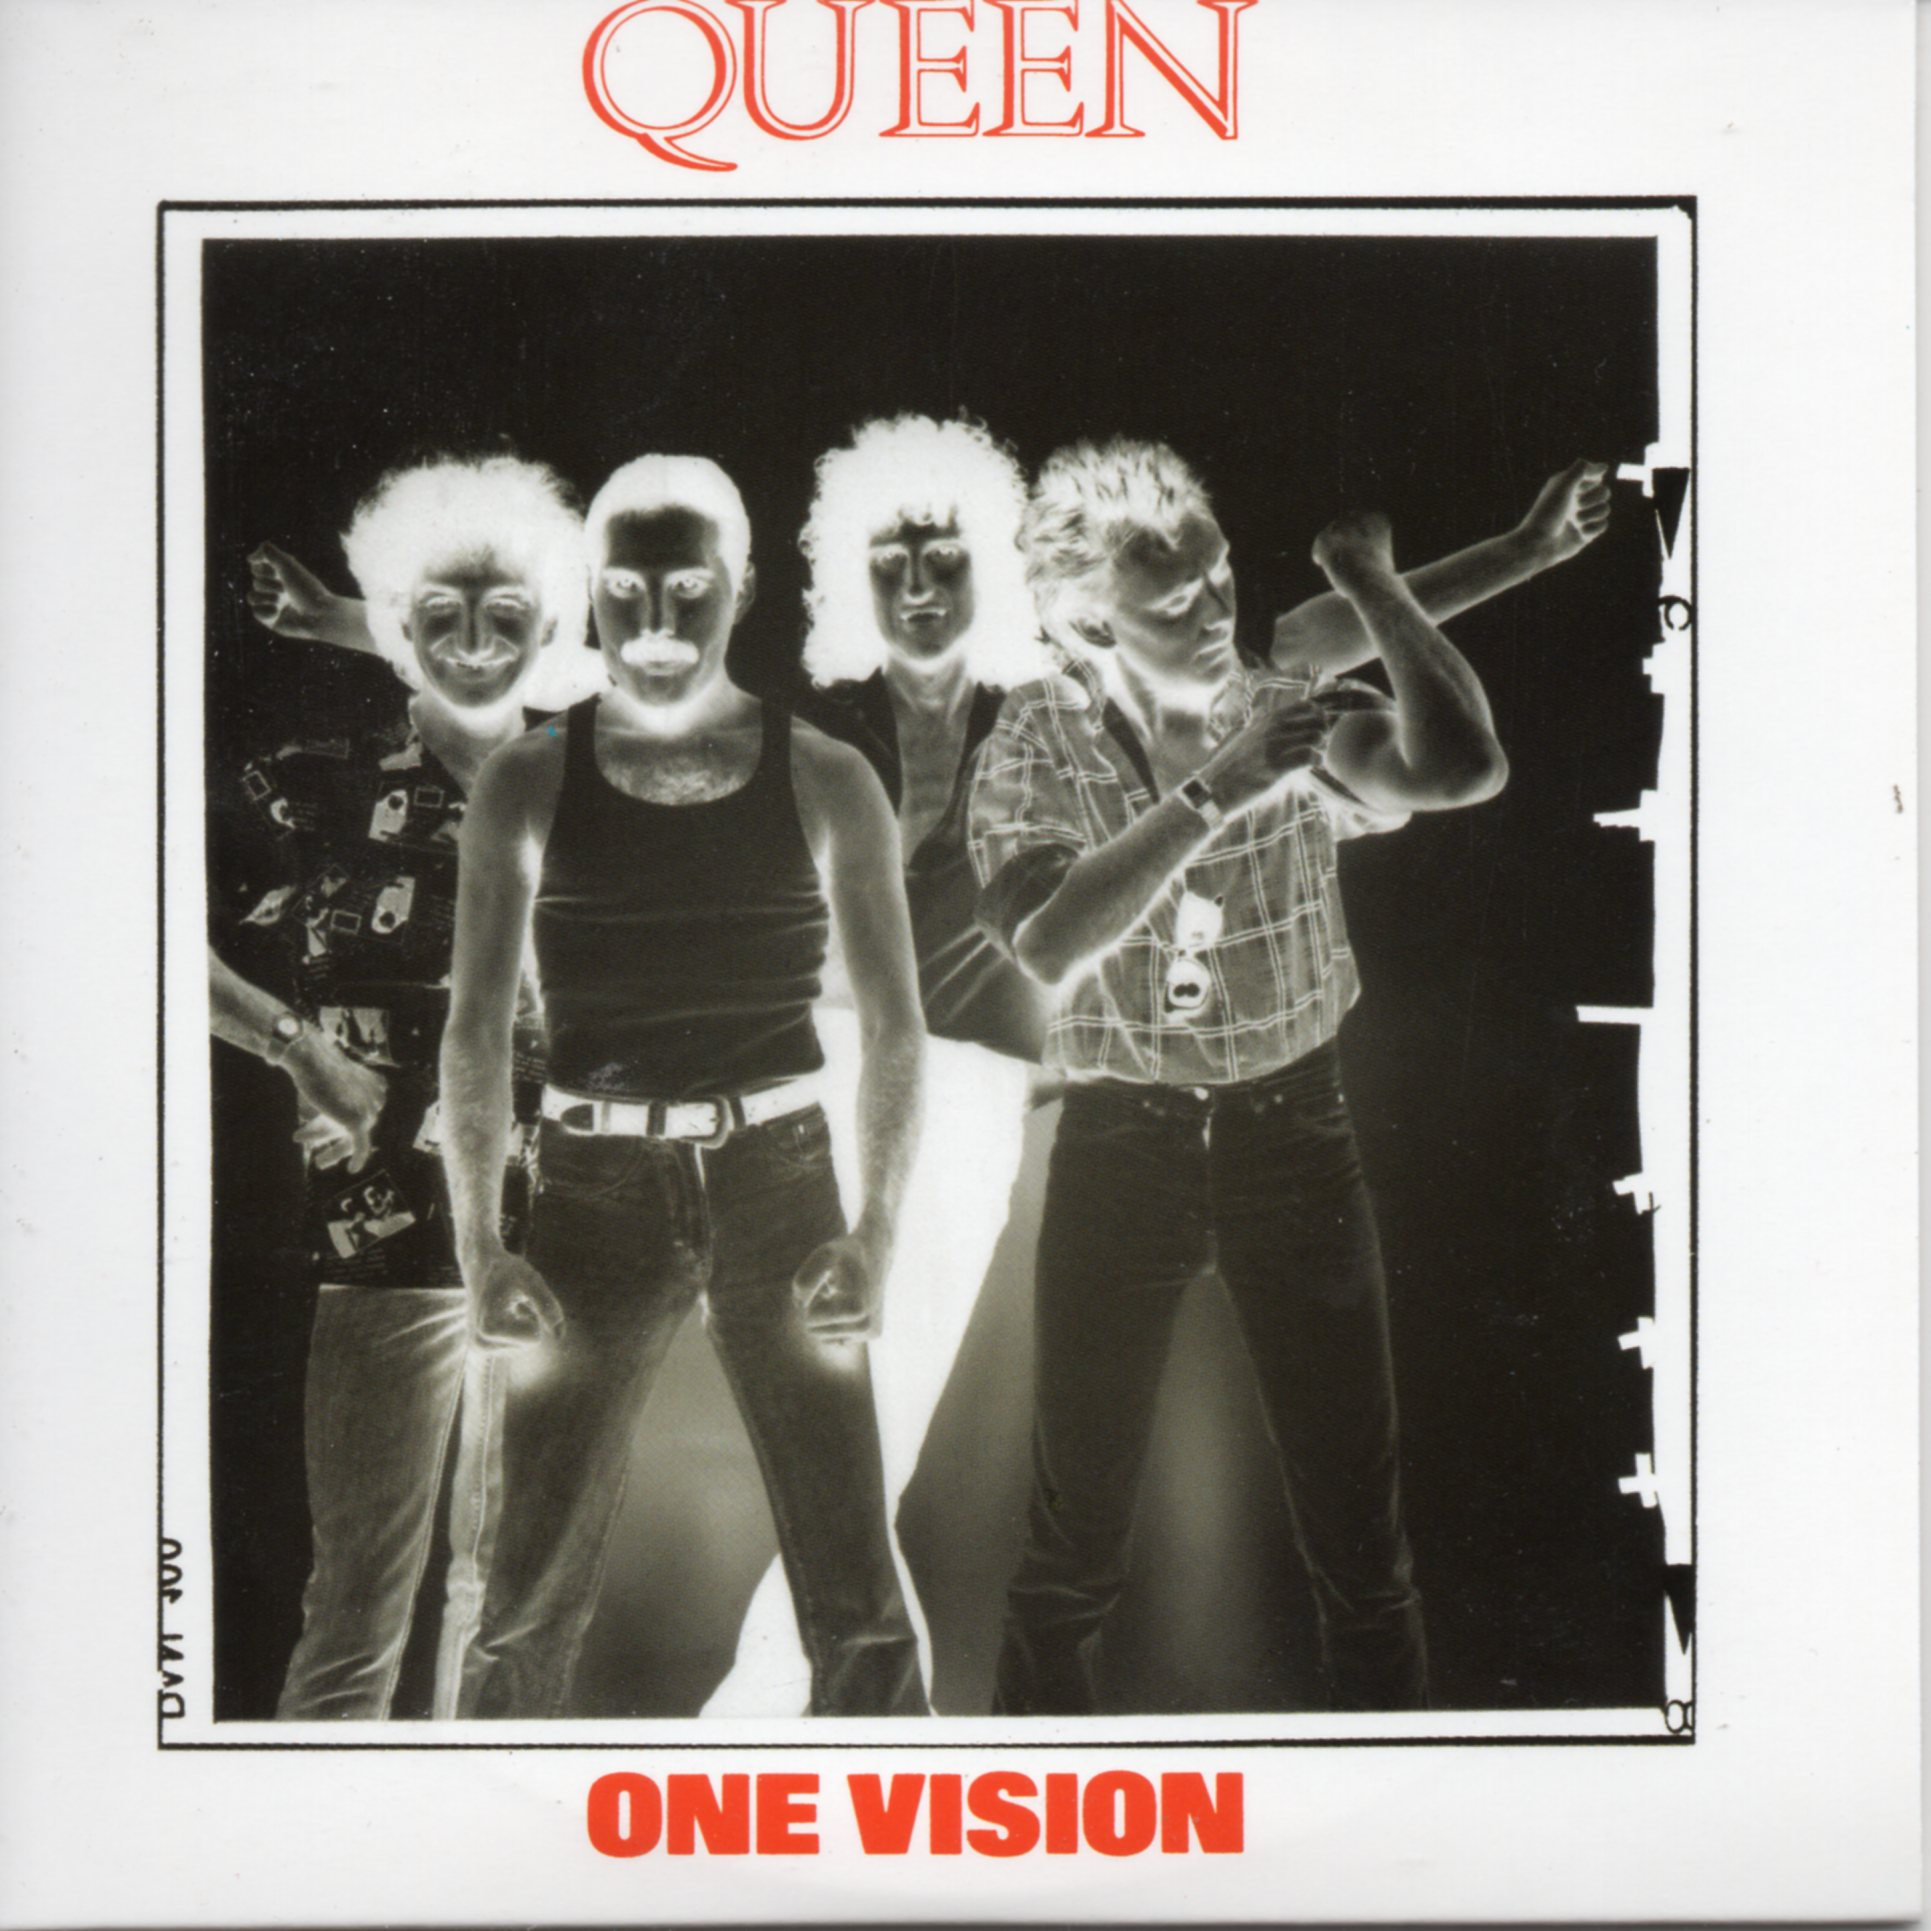 QUEEN - One Vision + Uk + 2-track Card Sleeve - Reedition Du 45t Original - - Reissue Of Original 7""